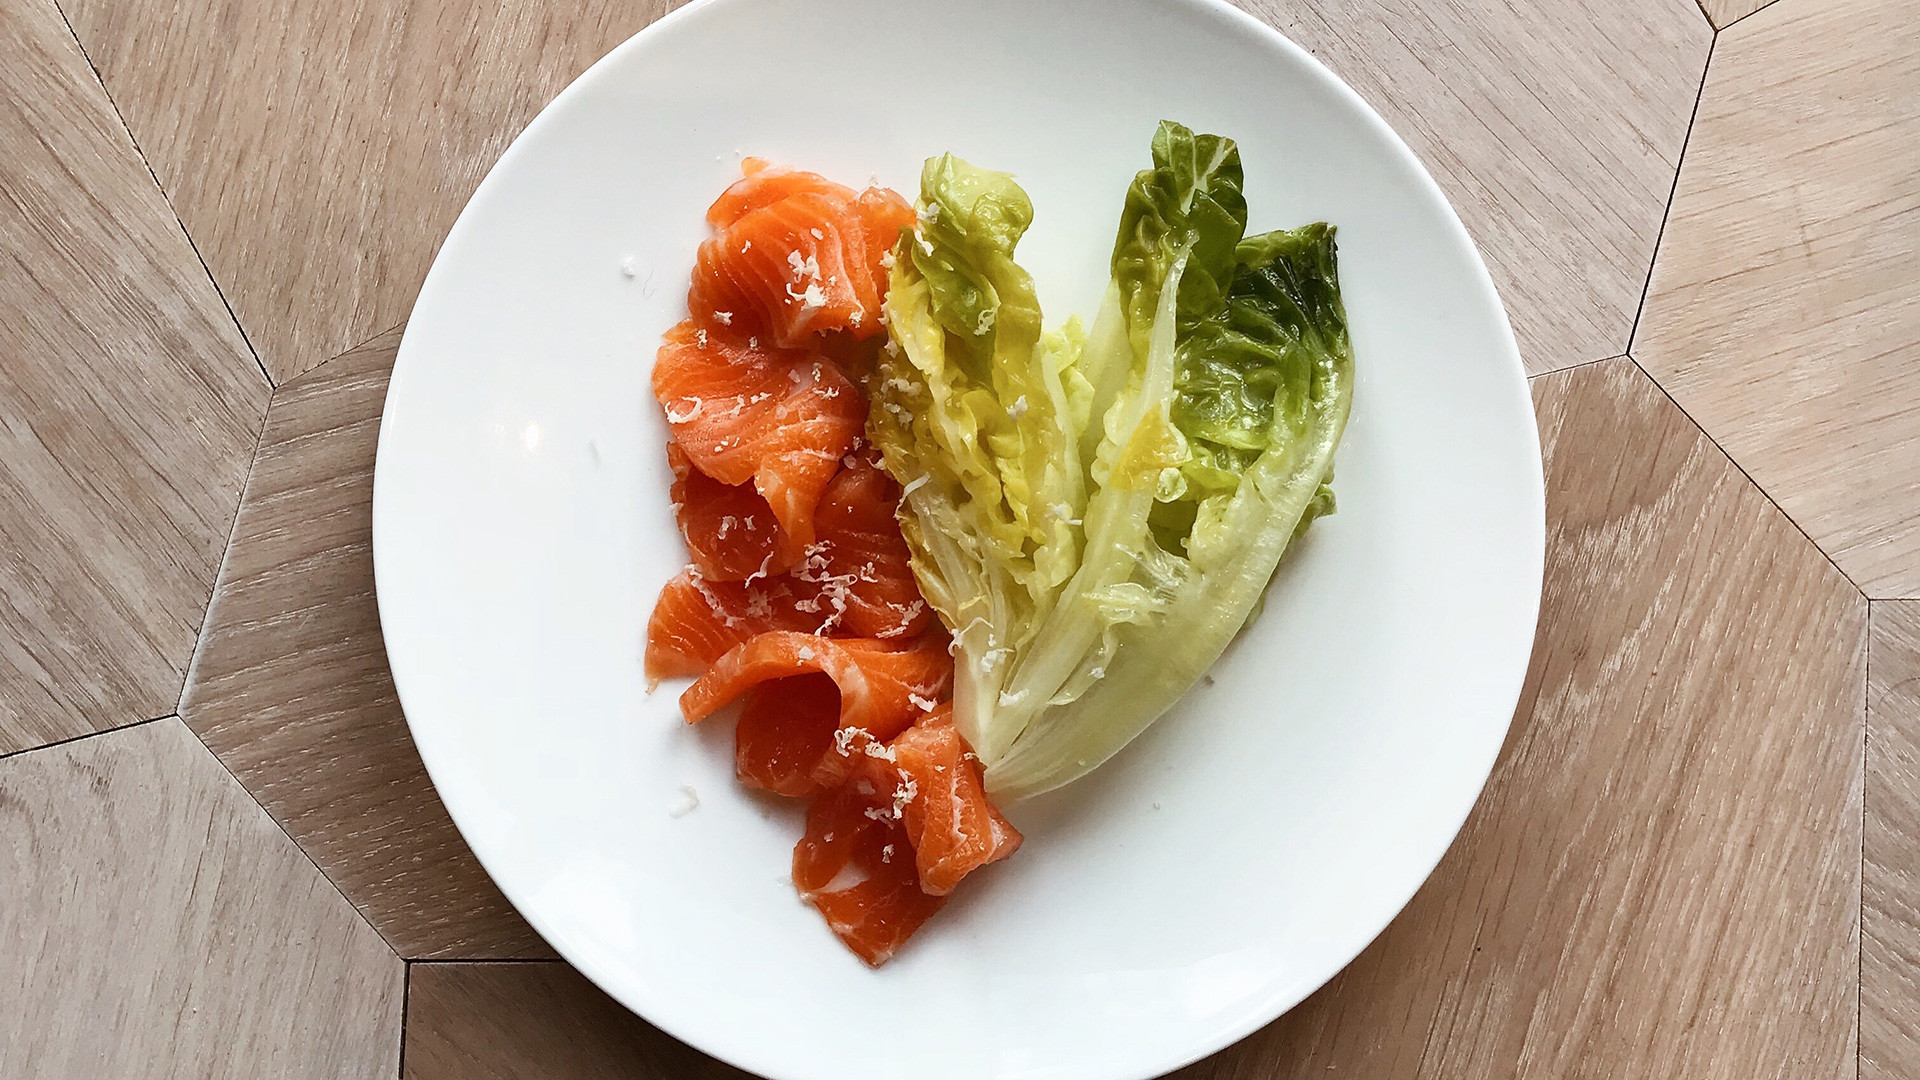 Smoked salmon with fermented greens